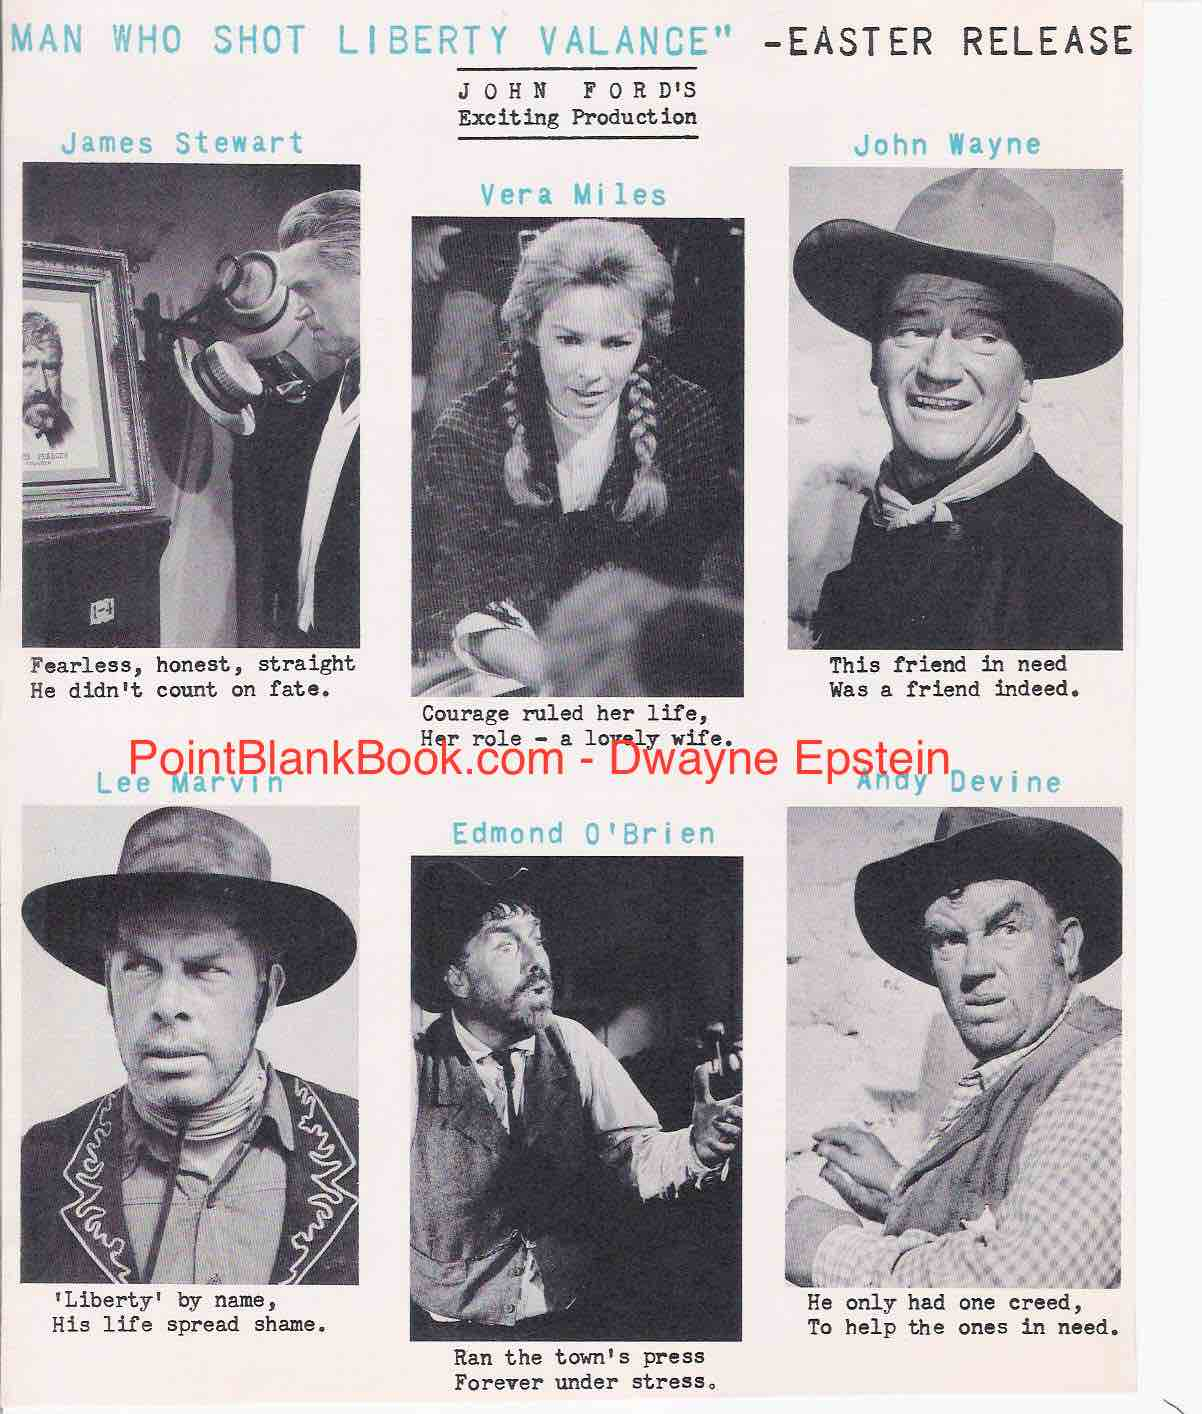 Lee Marvin I Will Be Point Blank About Liberty Valance: LIBERTY VALANCE PREMIERES APRIL 13, 1962